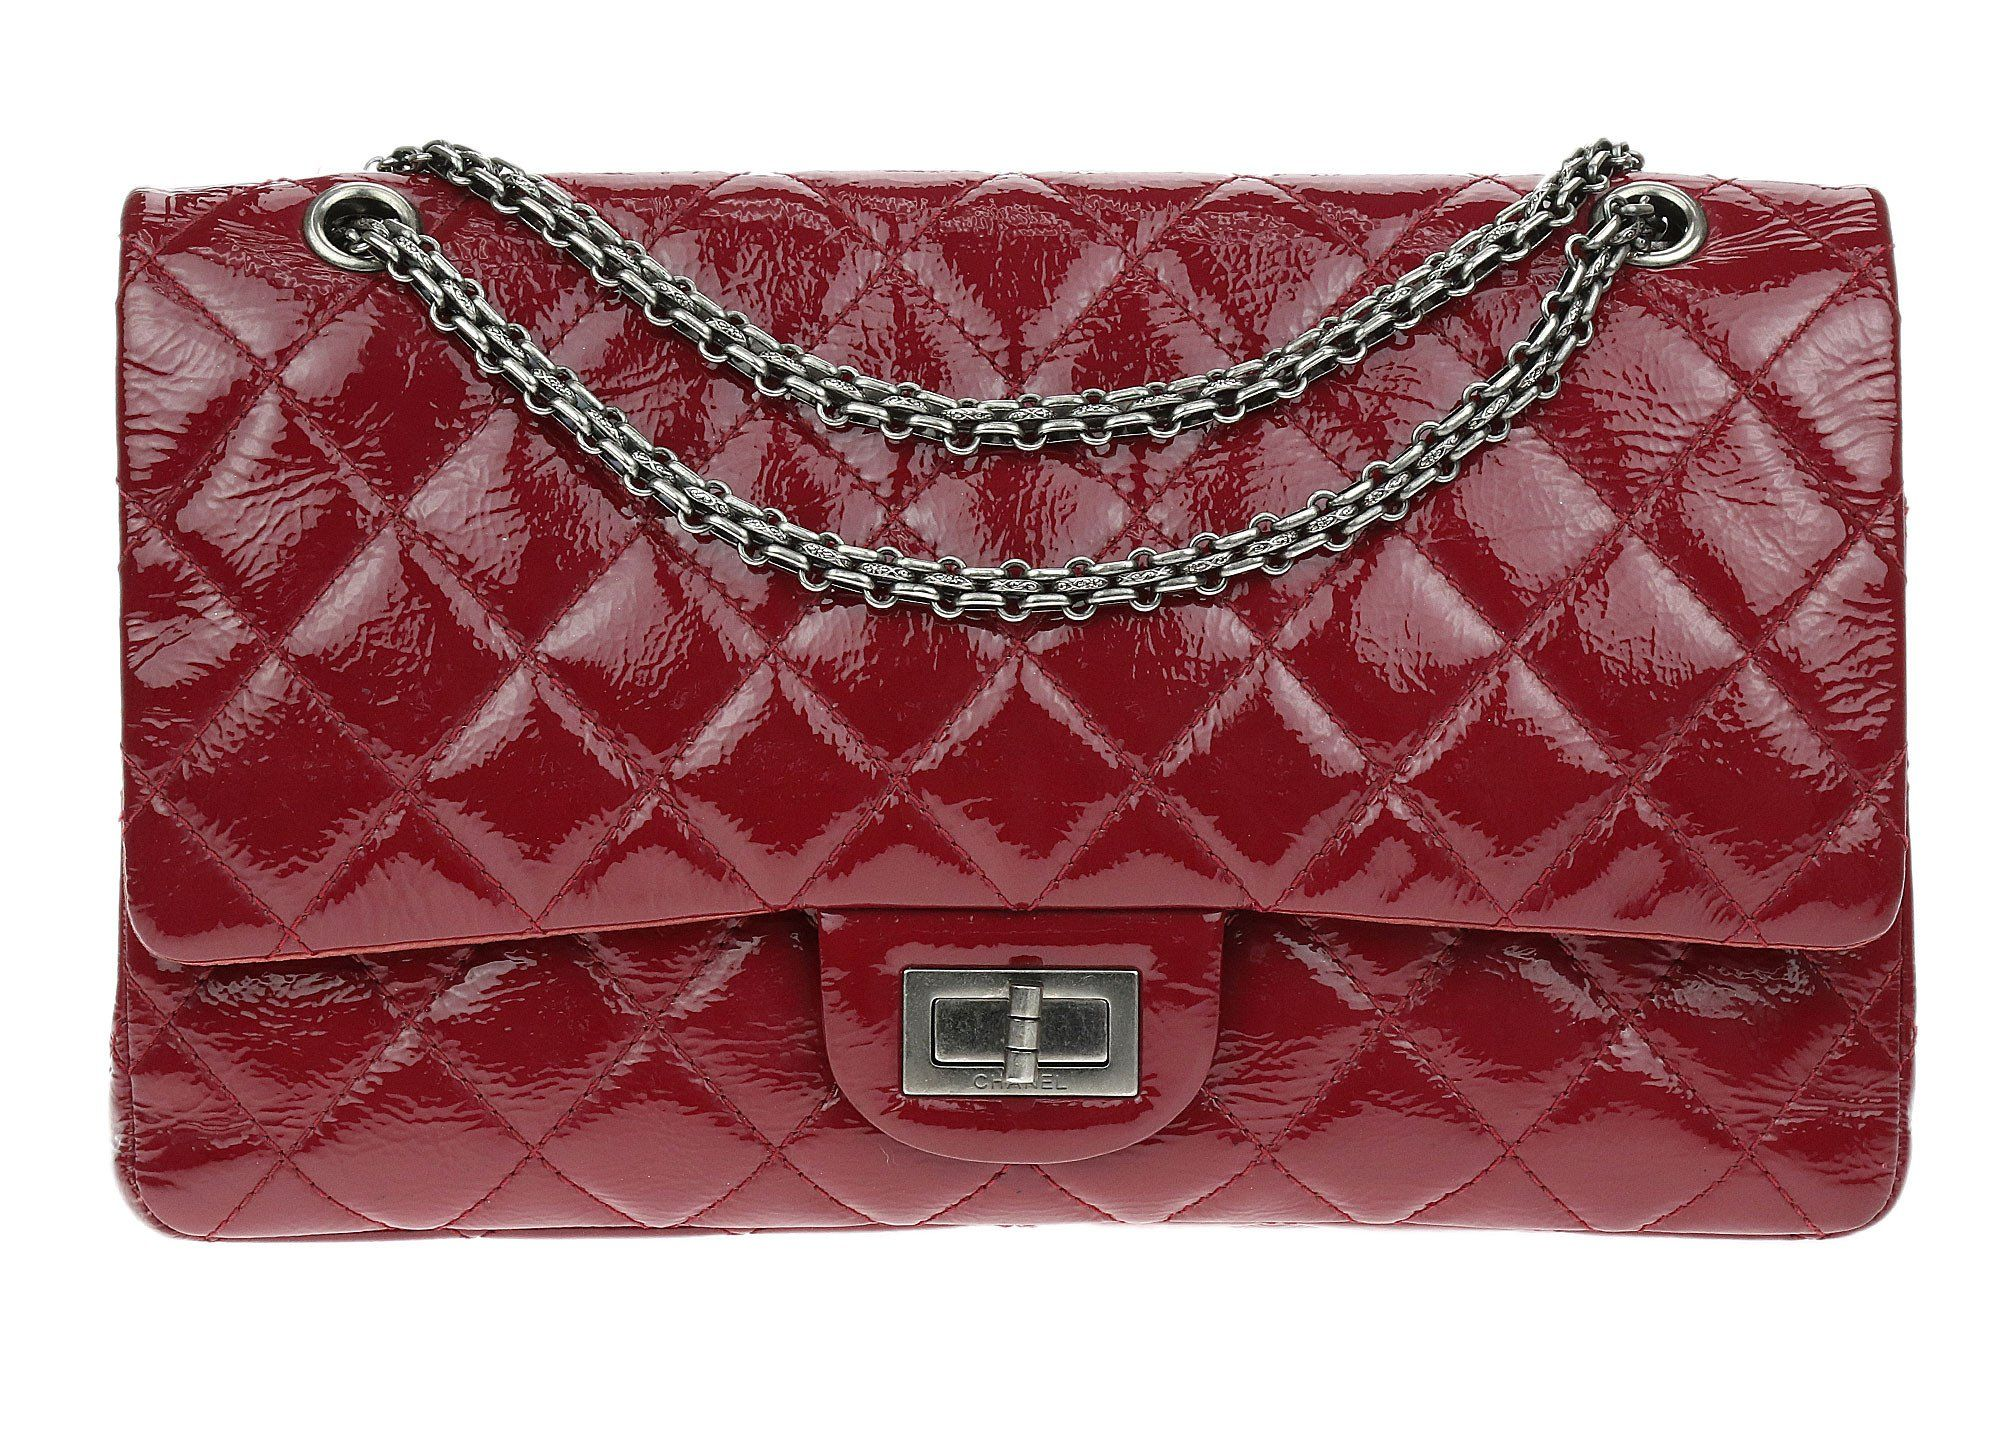 b2162d894e65 Chanel Red Glazed Aged Calfskin Quilted 2.55 Reissue Double Flap Bag 227